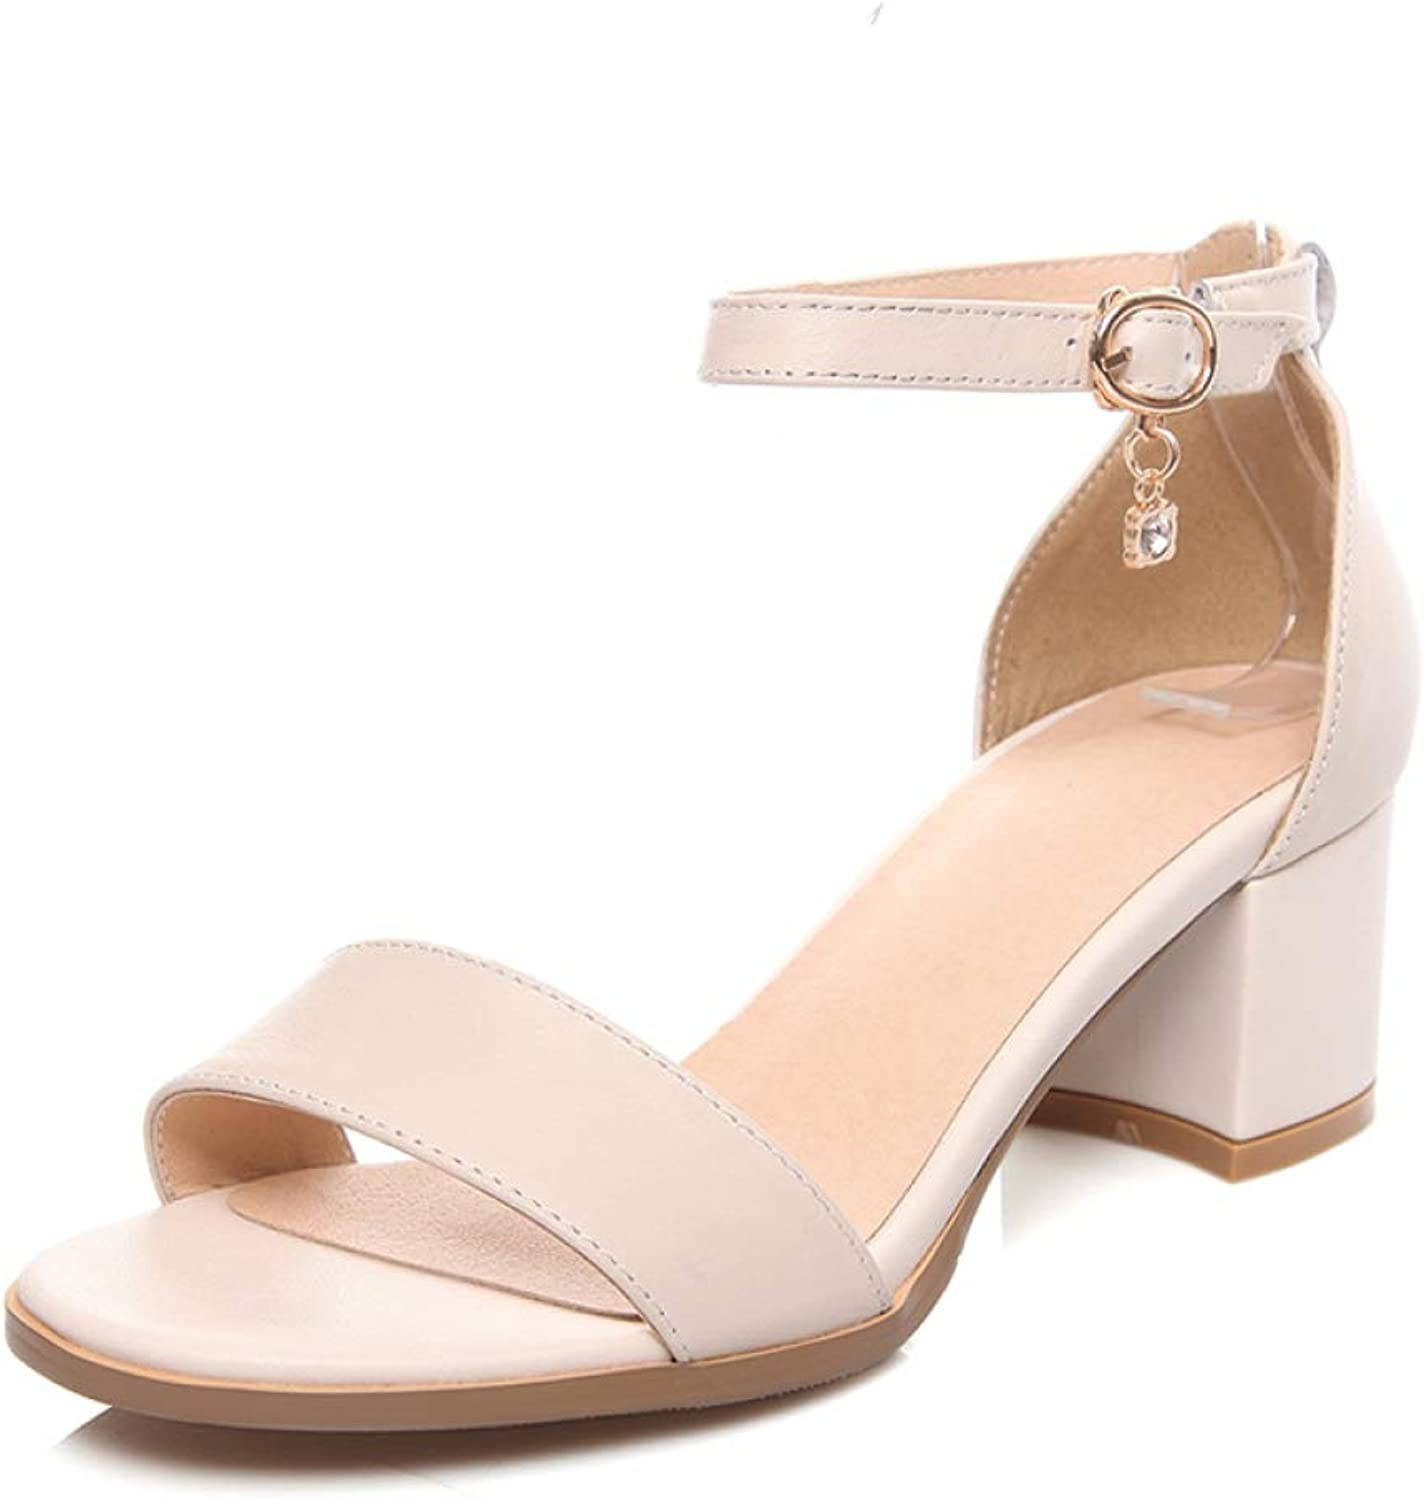 MEIZOKEN Women's Low Chunky Block Heel Sandals Buckle Ankle Strap Open Toe Dress Pumps Sandal